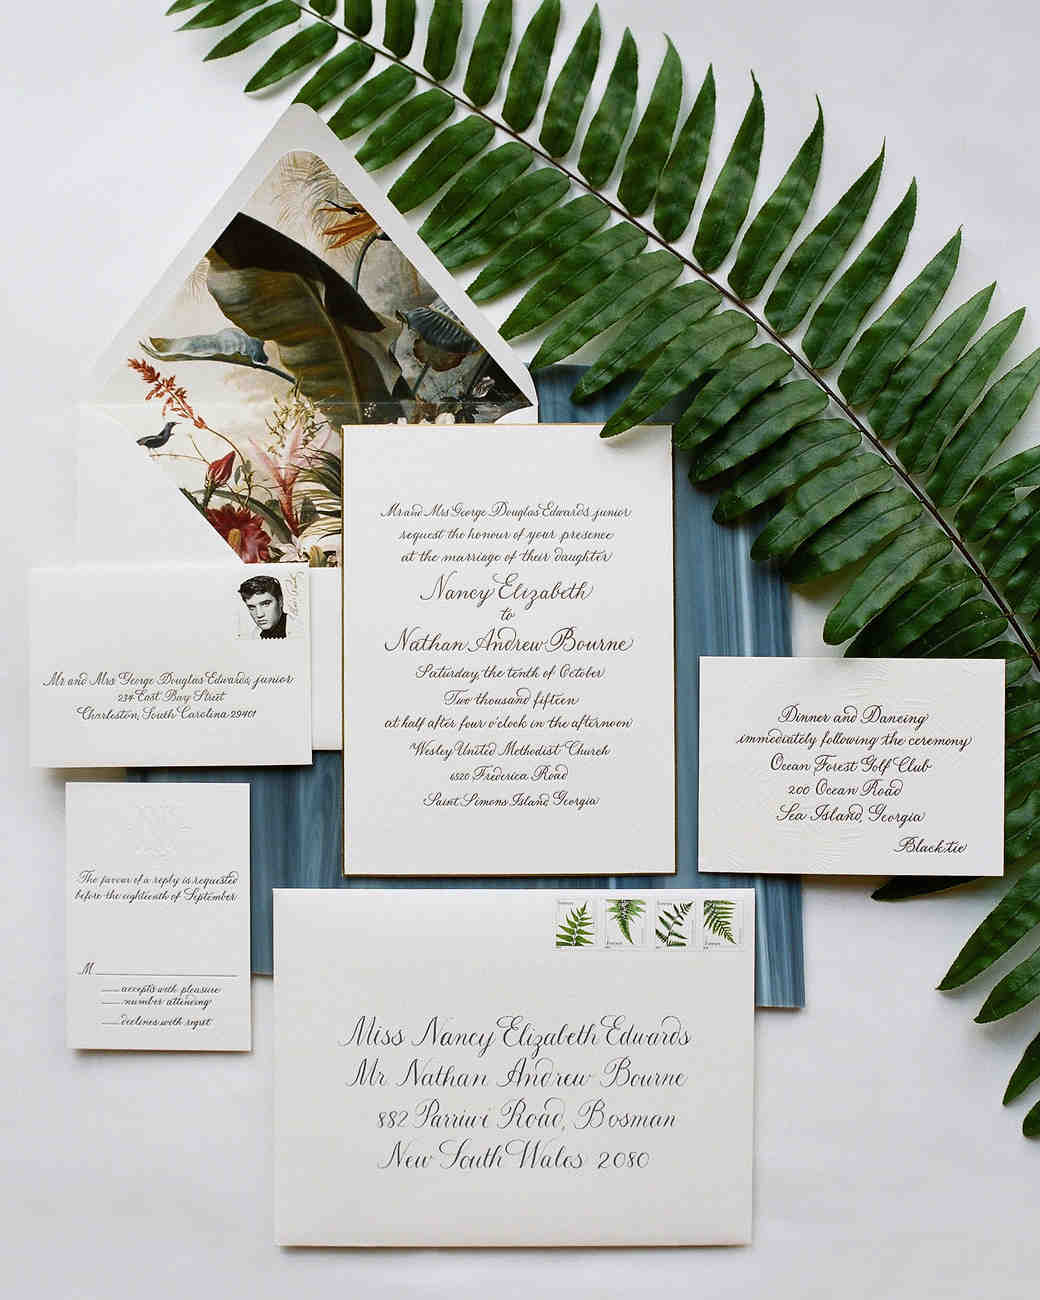 Rhode Island Wedding Invitation Printed: A Classic, Nature-Inspired Wedding In Sea Island